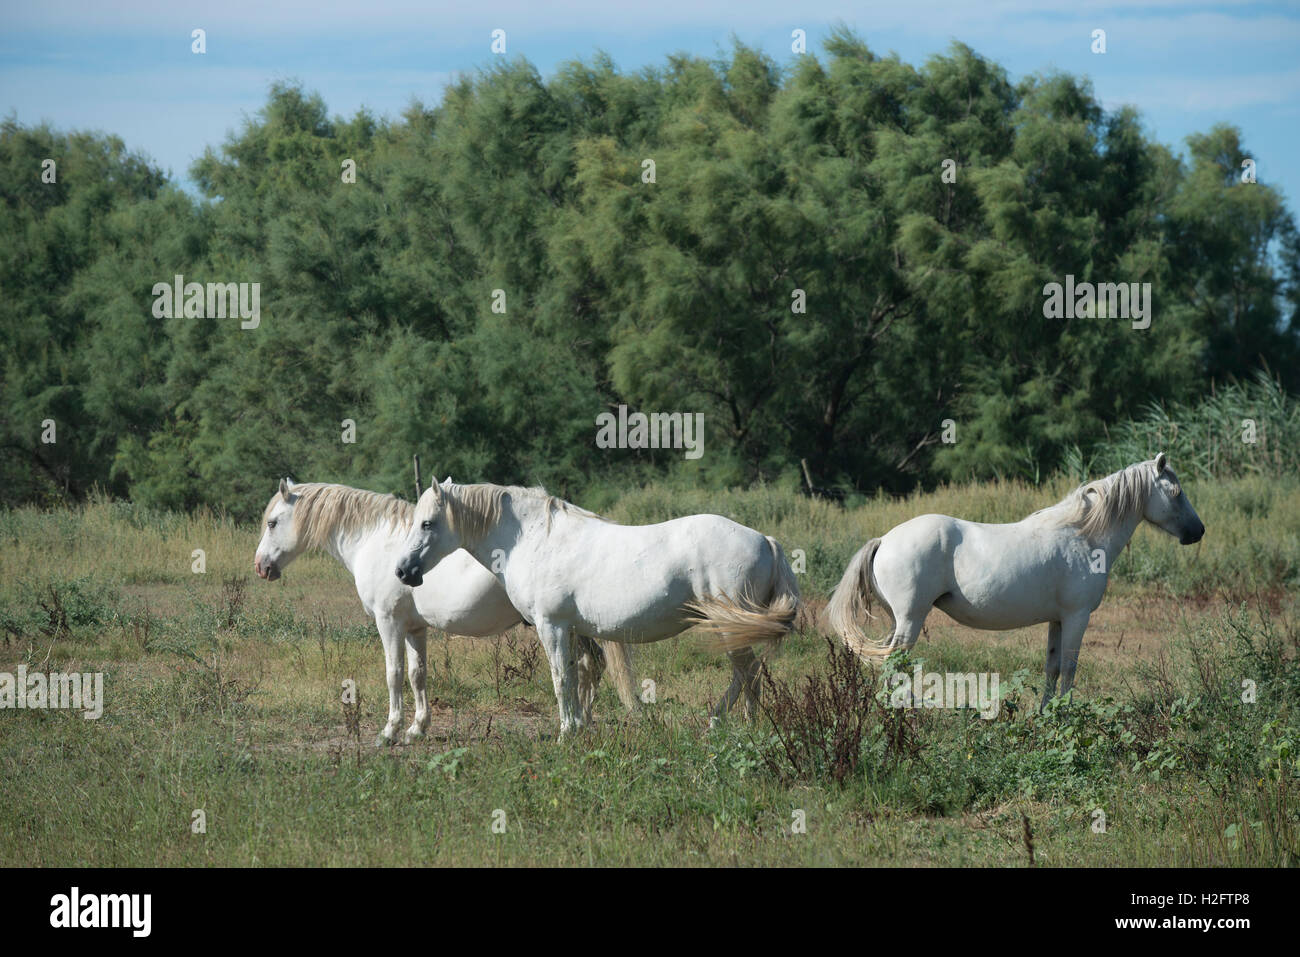 Three Camargue horses, indigenous to the Camargue area in southern France - Stock Image